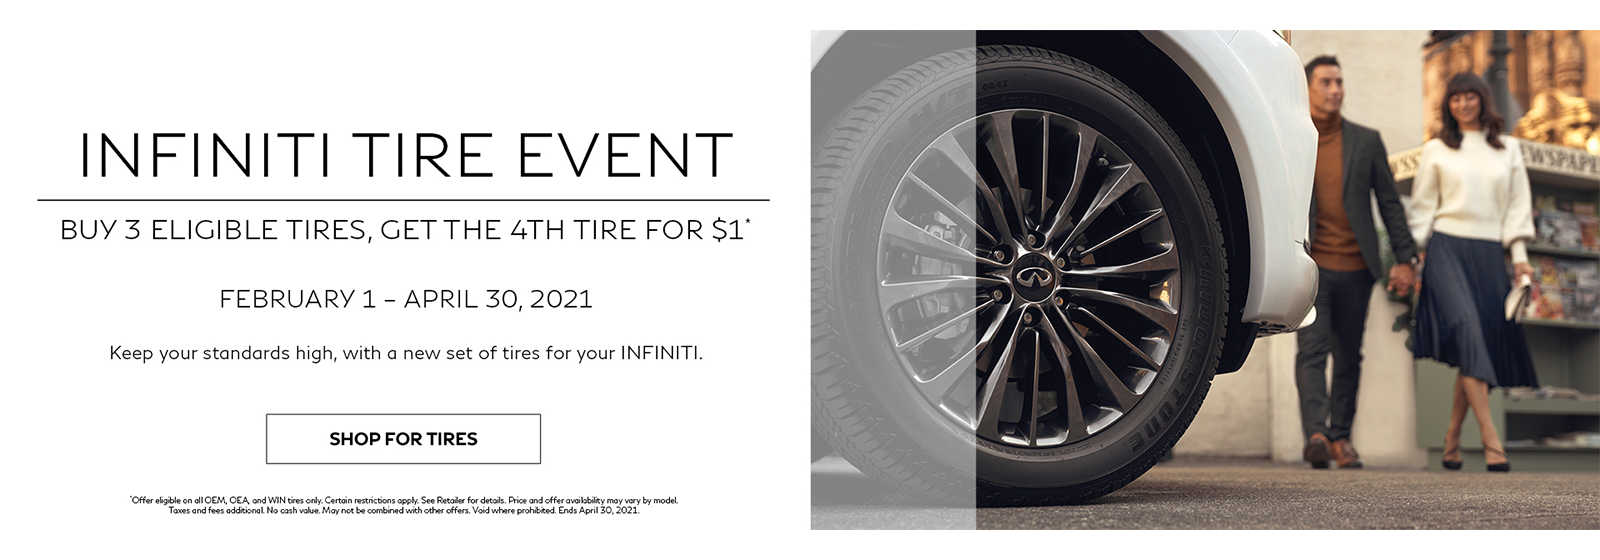 TireEvent2021